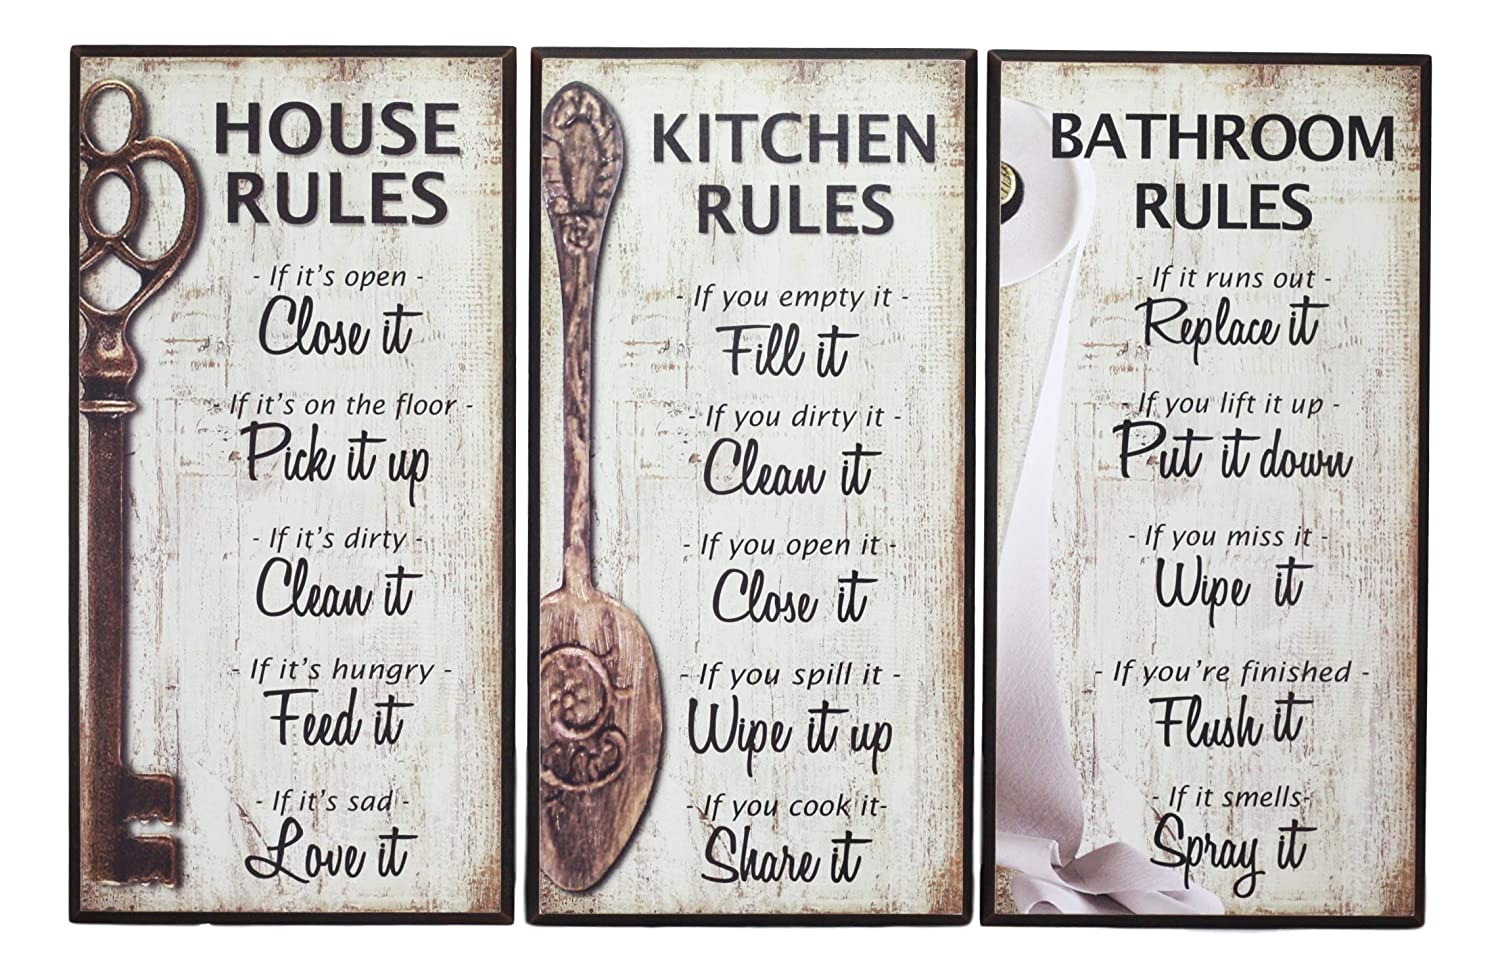 Ebros 7-Inch-by-14-Inch Rustic Country Wood Our Family Rules Wall Art Wooden Sign Decor for Kitchen House and Bathroom Walls Vintage Hanging Plaque Reminder Signs Set of 3